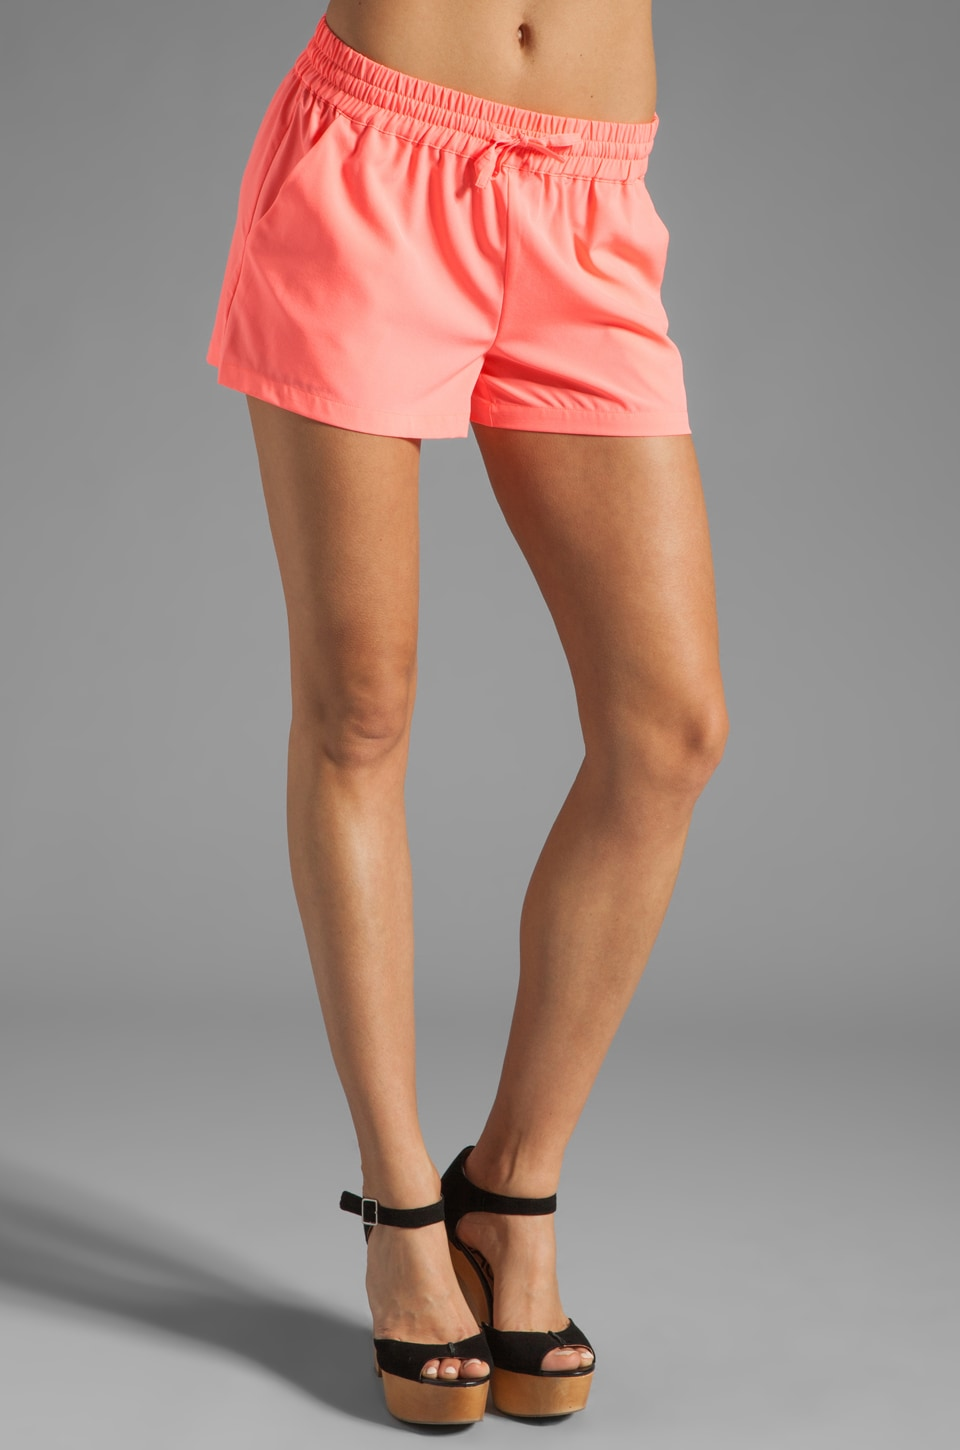 BB Dakota Jilliane Woven Shorts in Neon Pink